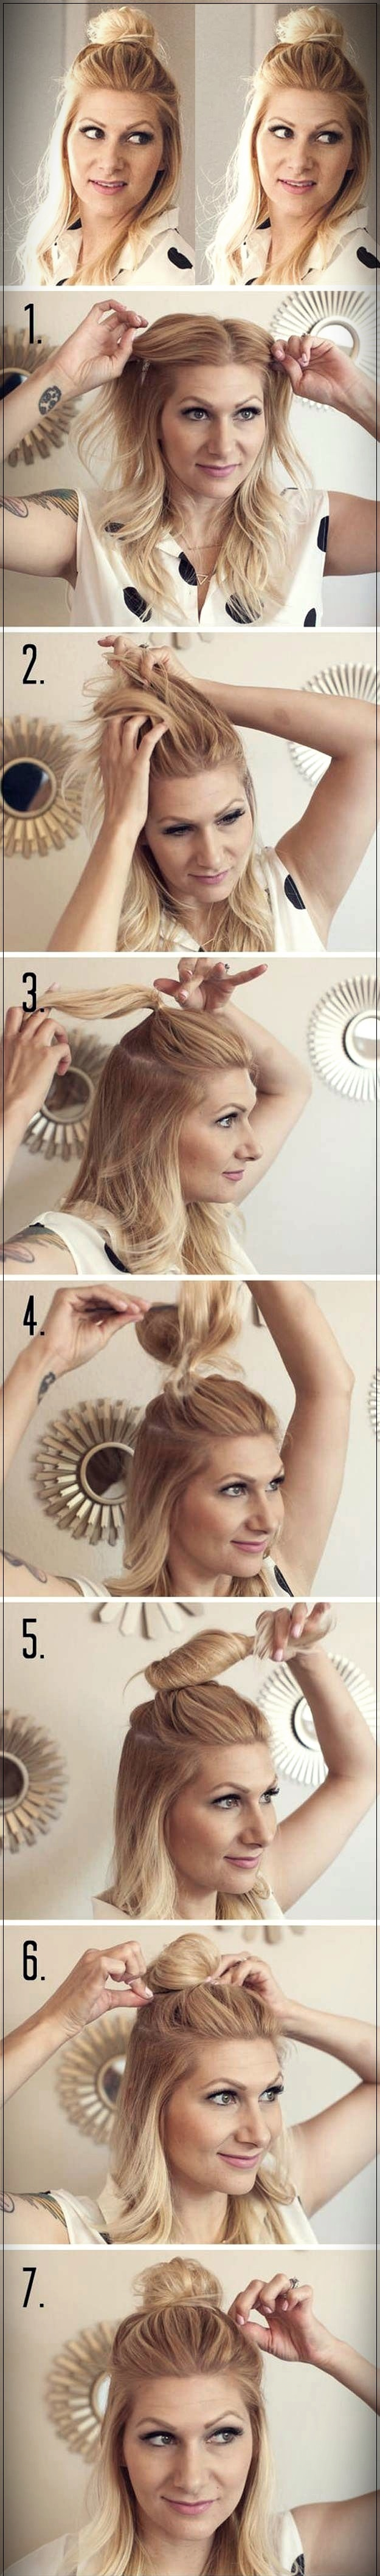 Easy Hairstyles 2019 step by step - easy hairstyles 2019 22